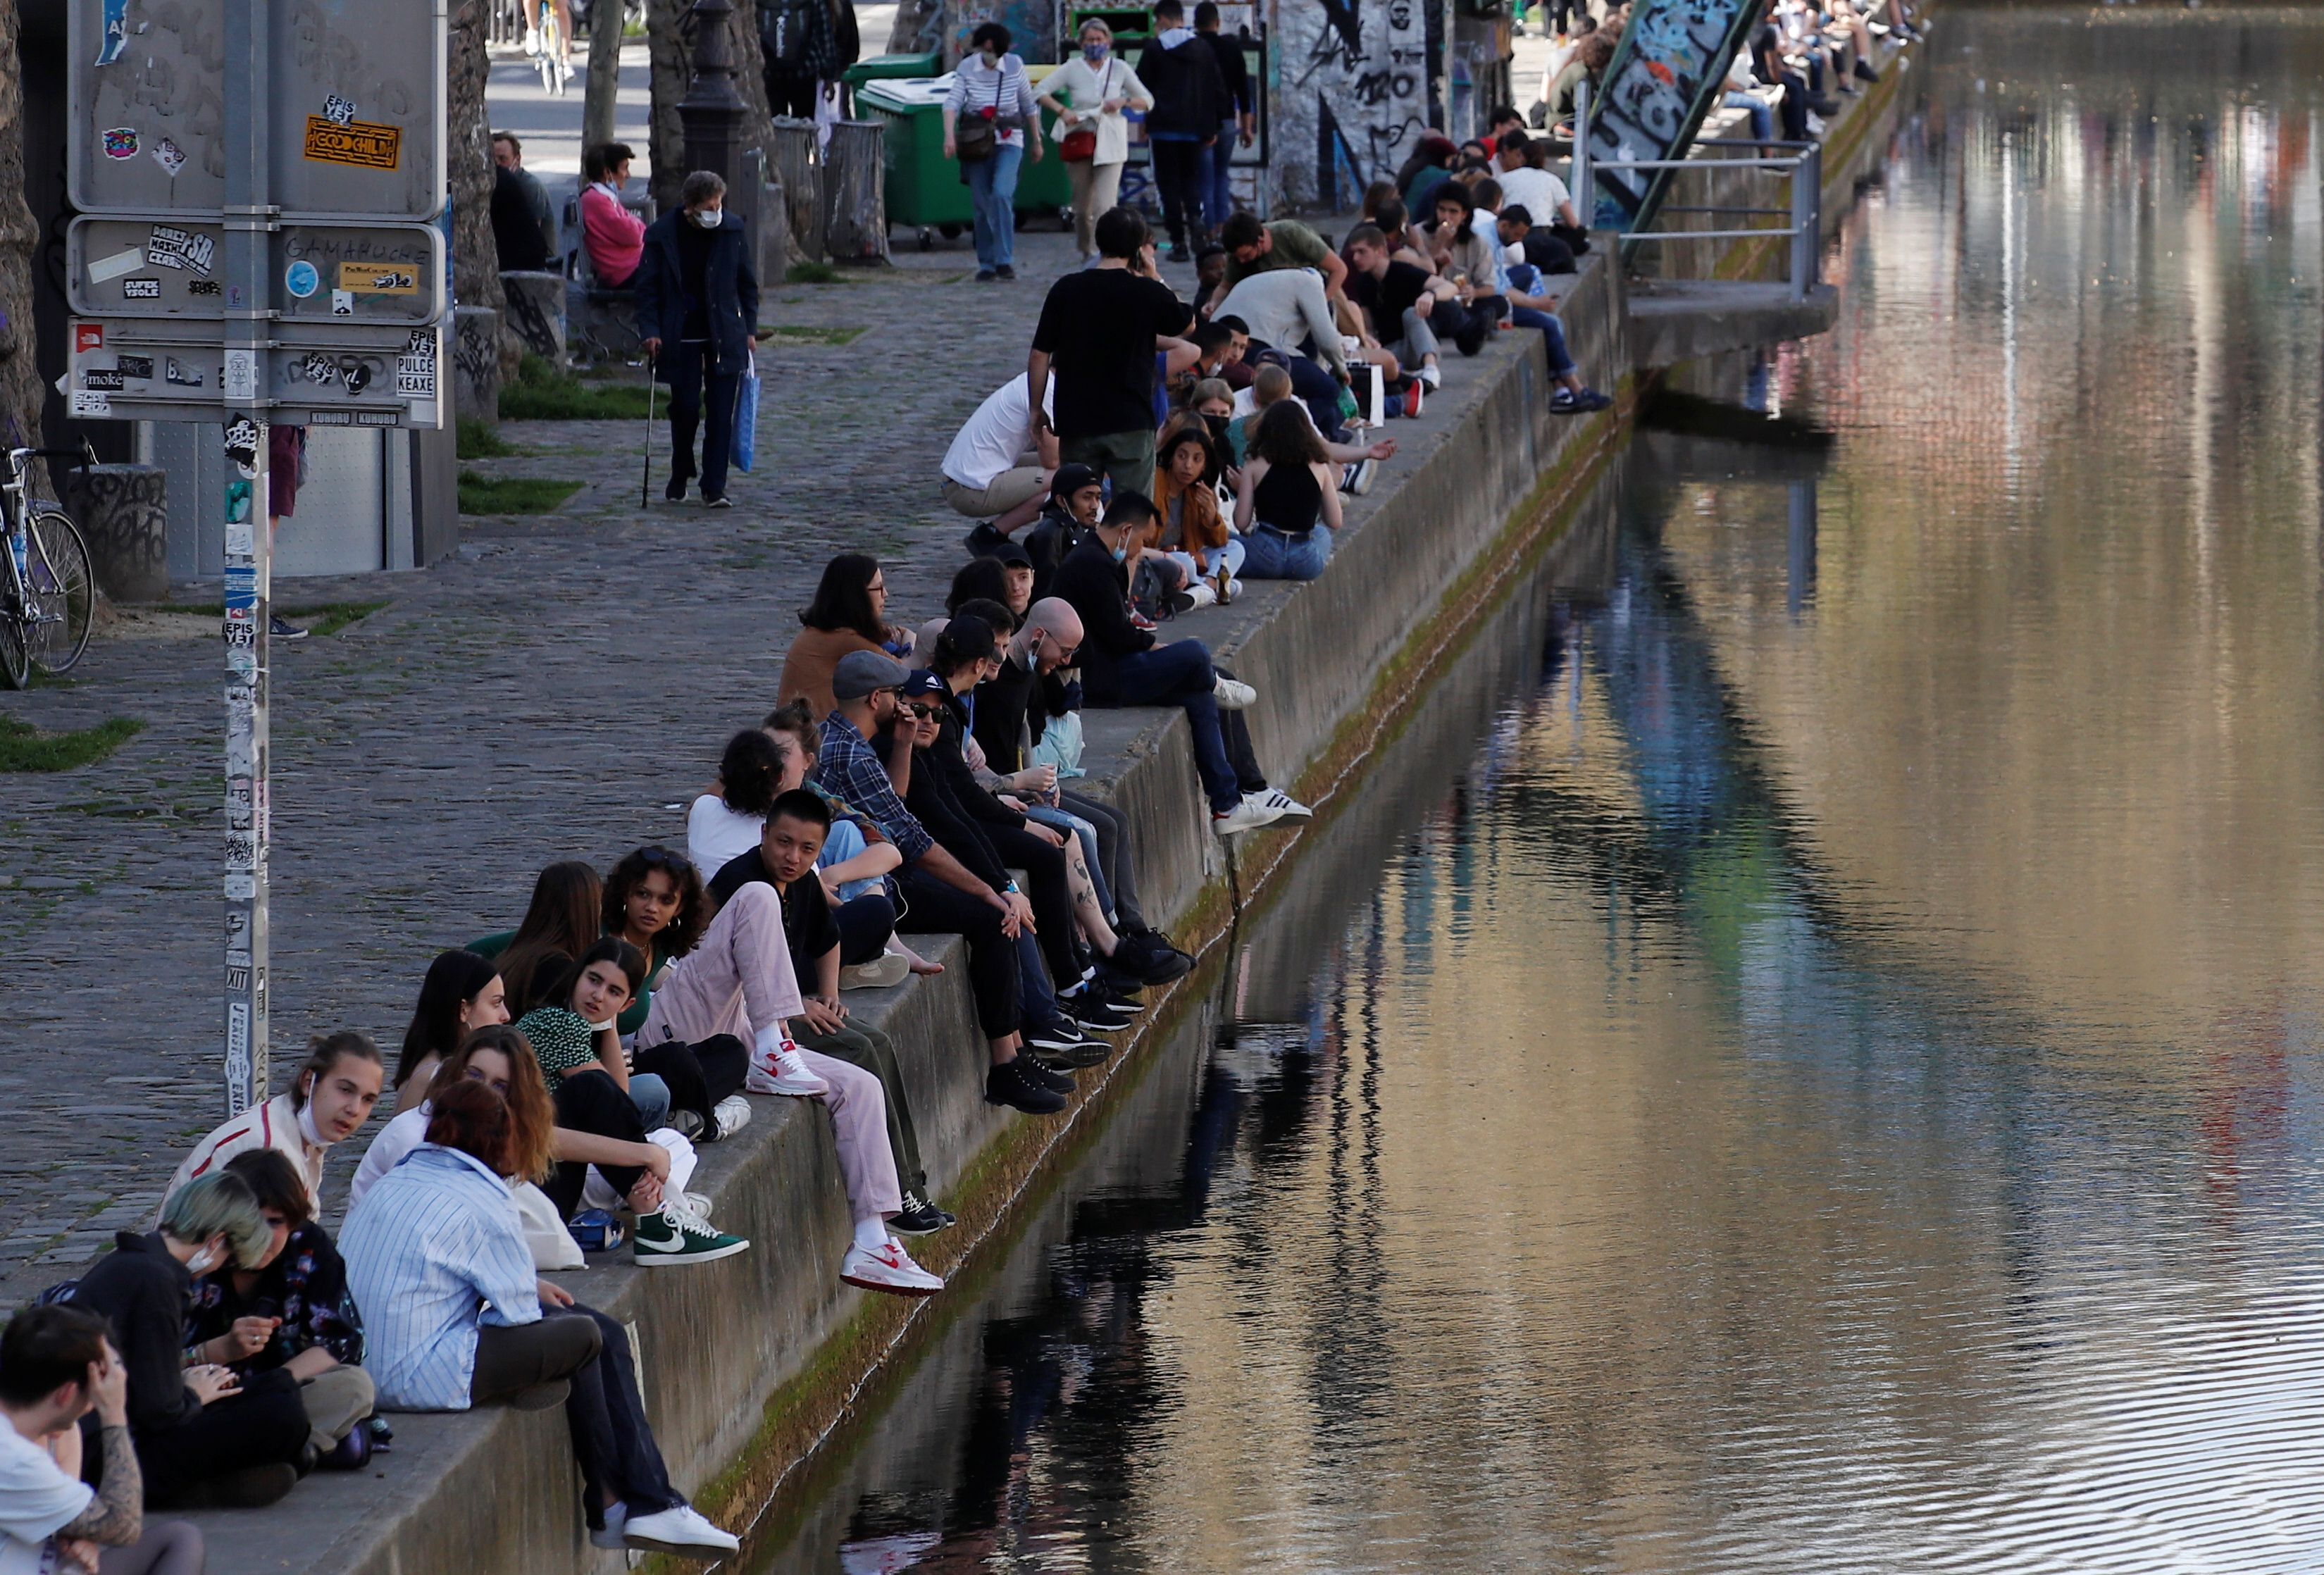 People enjoy a sunny and warm weather sitting along the Canal Saint-Martin in Paris amid the coronavirus disease (COVID-19) outbreak in France, March 31, 2021.  REUTERS/Gonzalo Fuentes